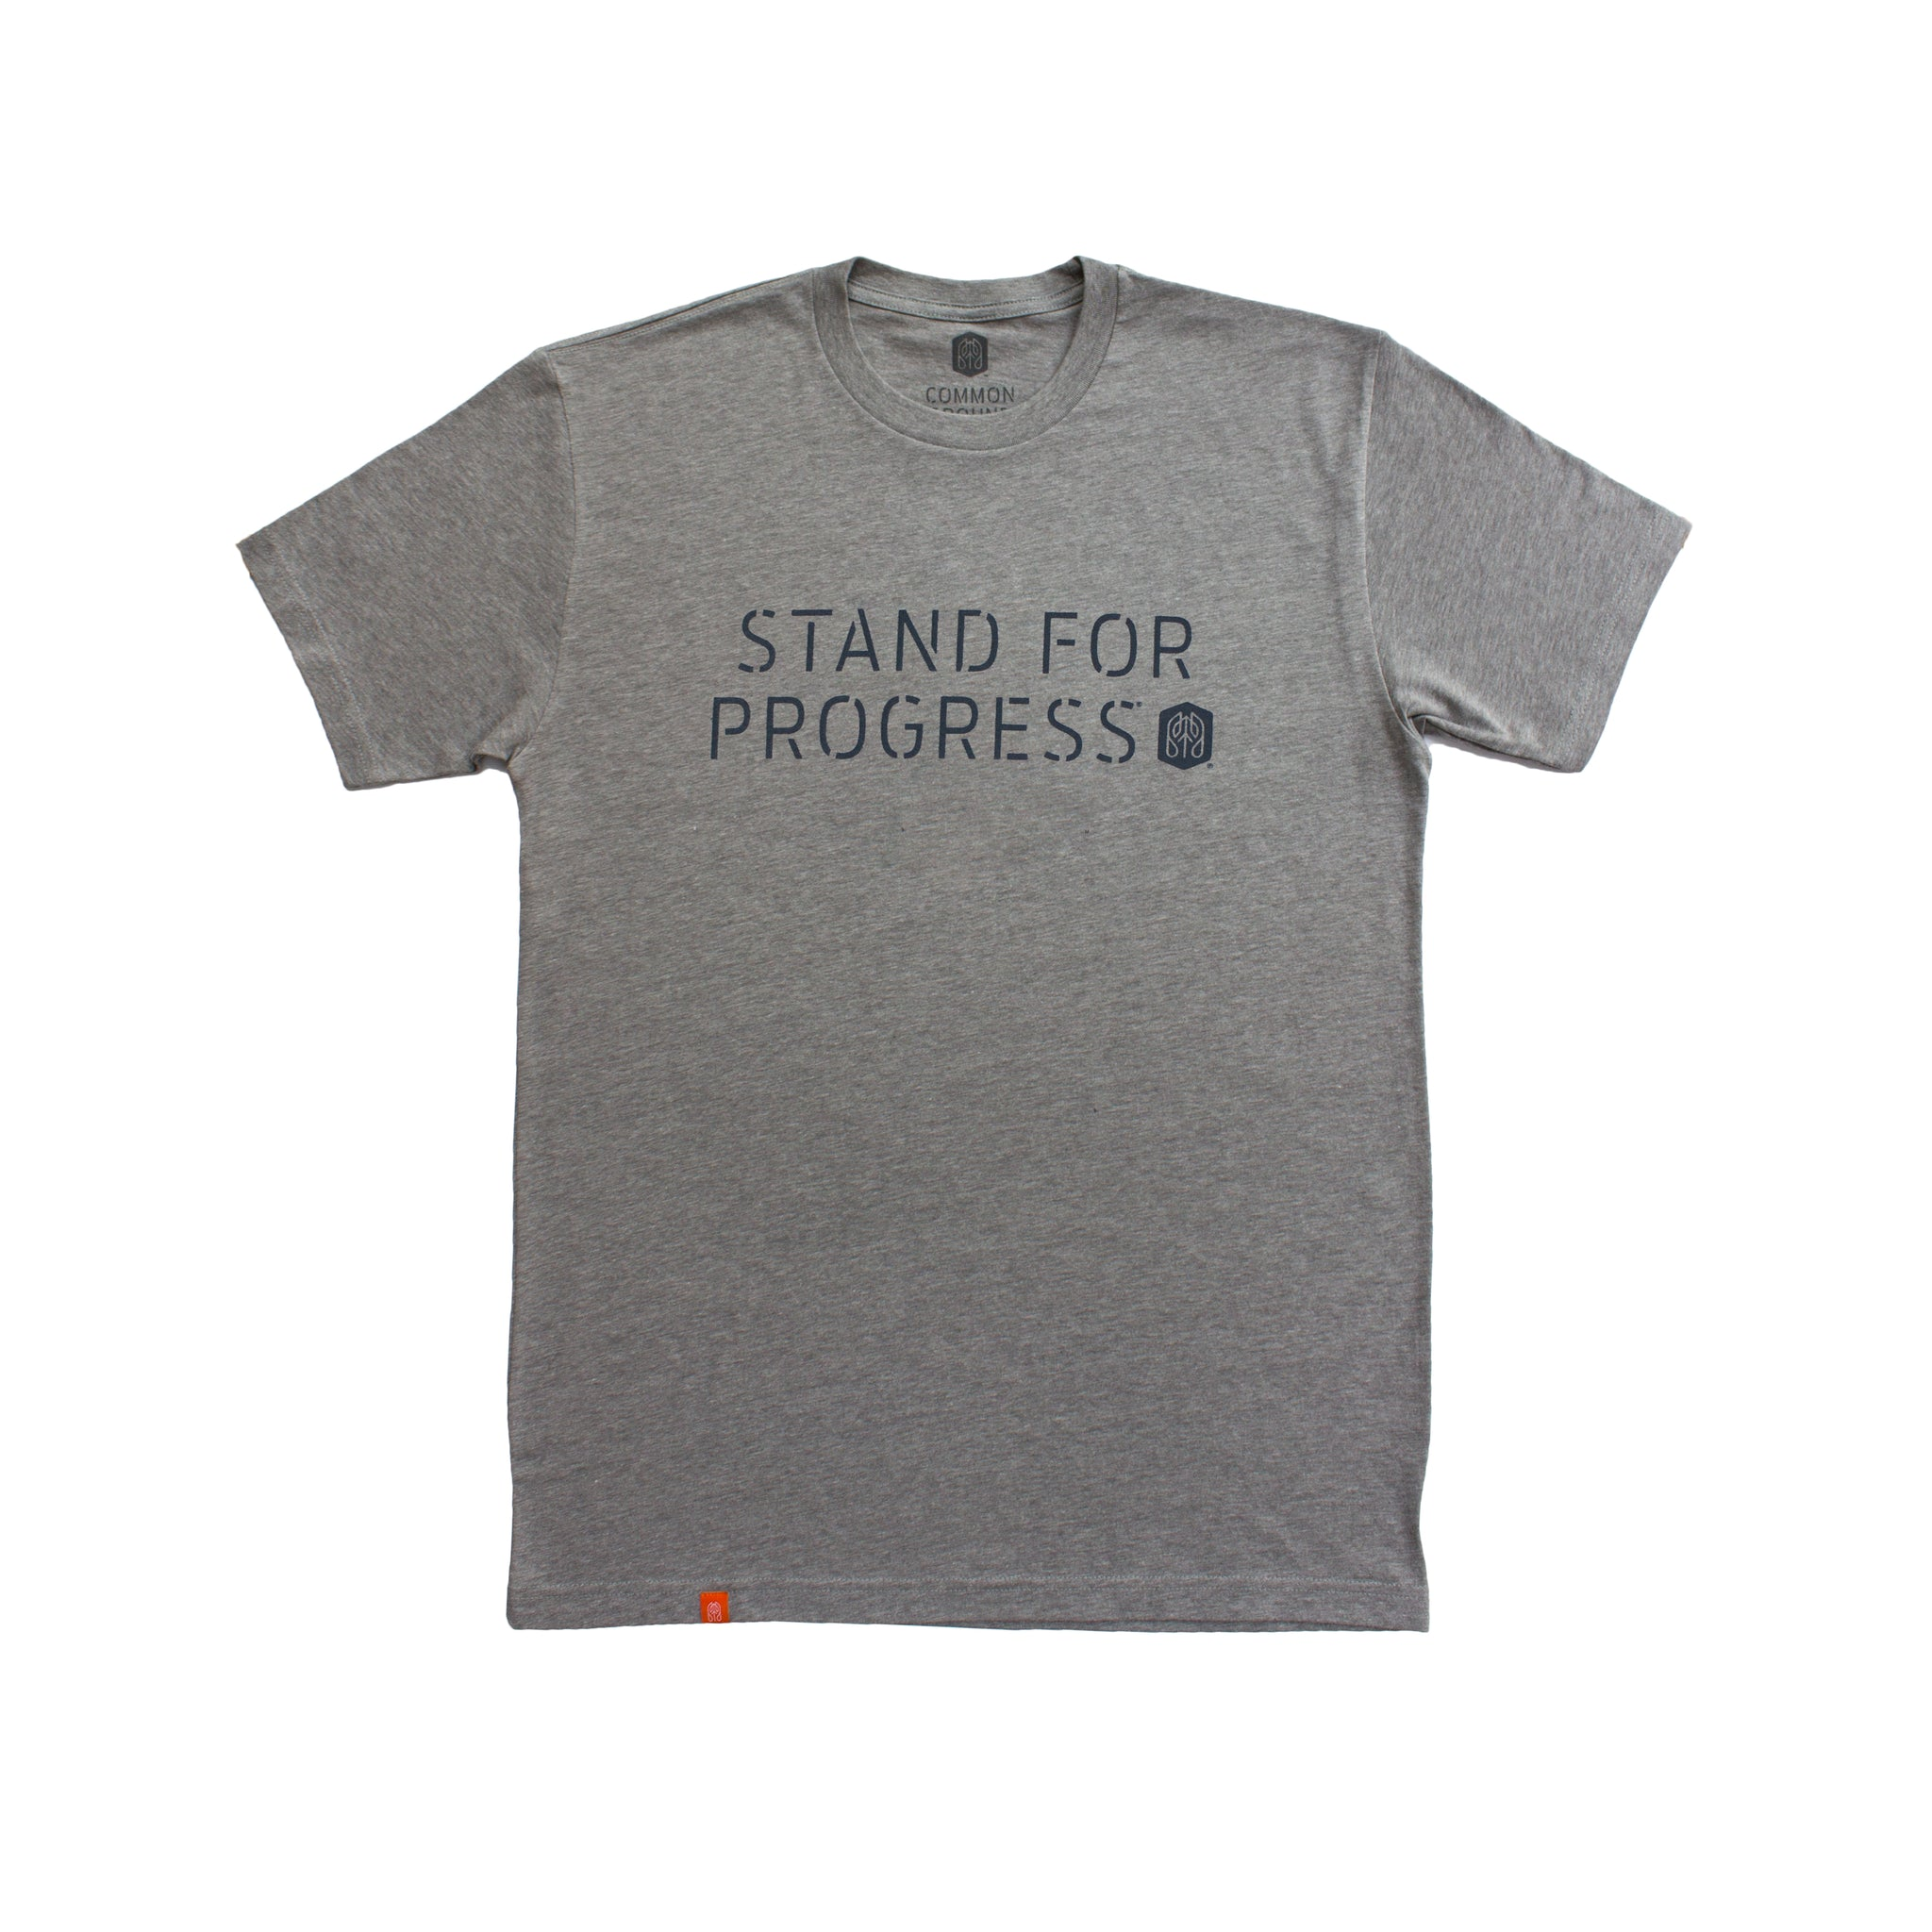 Dark_Heather_Gray - Common Ground T shirt Front View